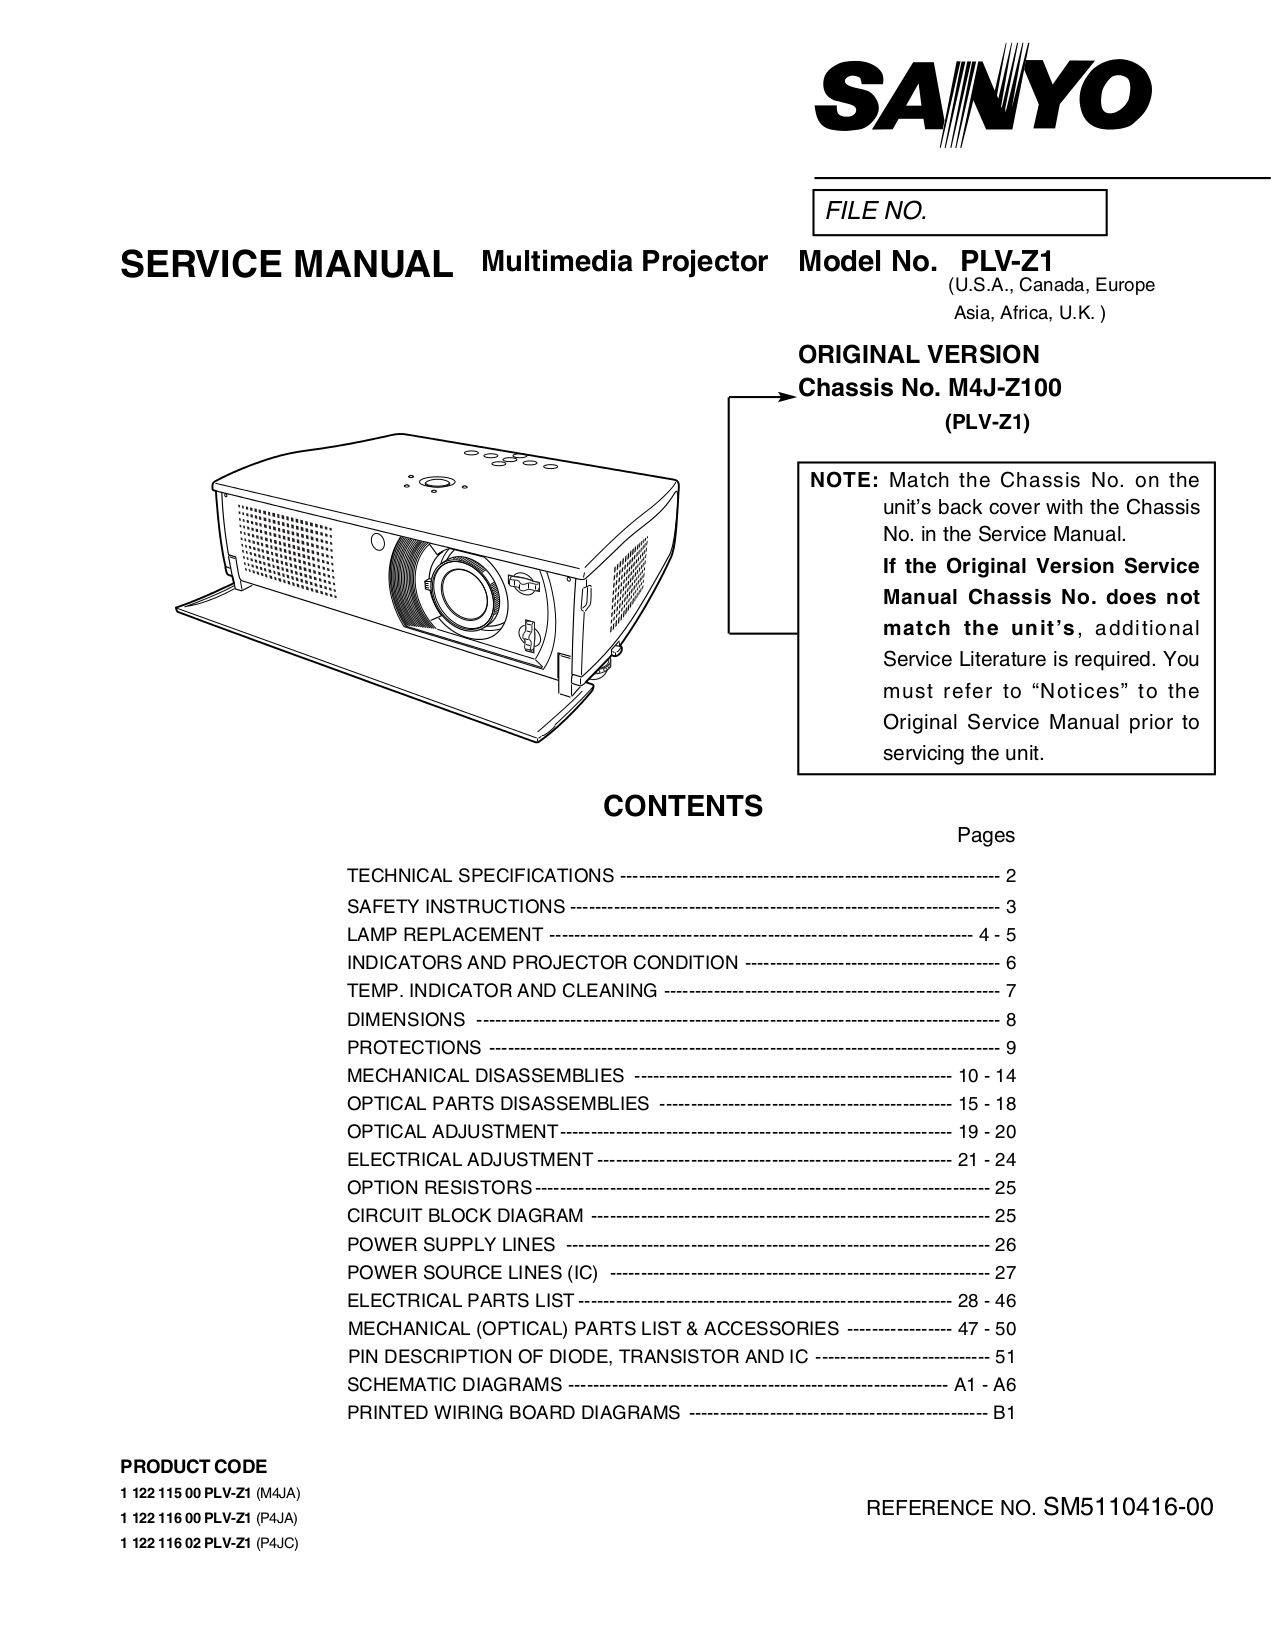 Dell manual e6500 ebook pdf for sanyo projector plv z1 manual fandeluxe Image collections